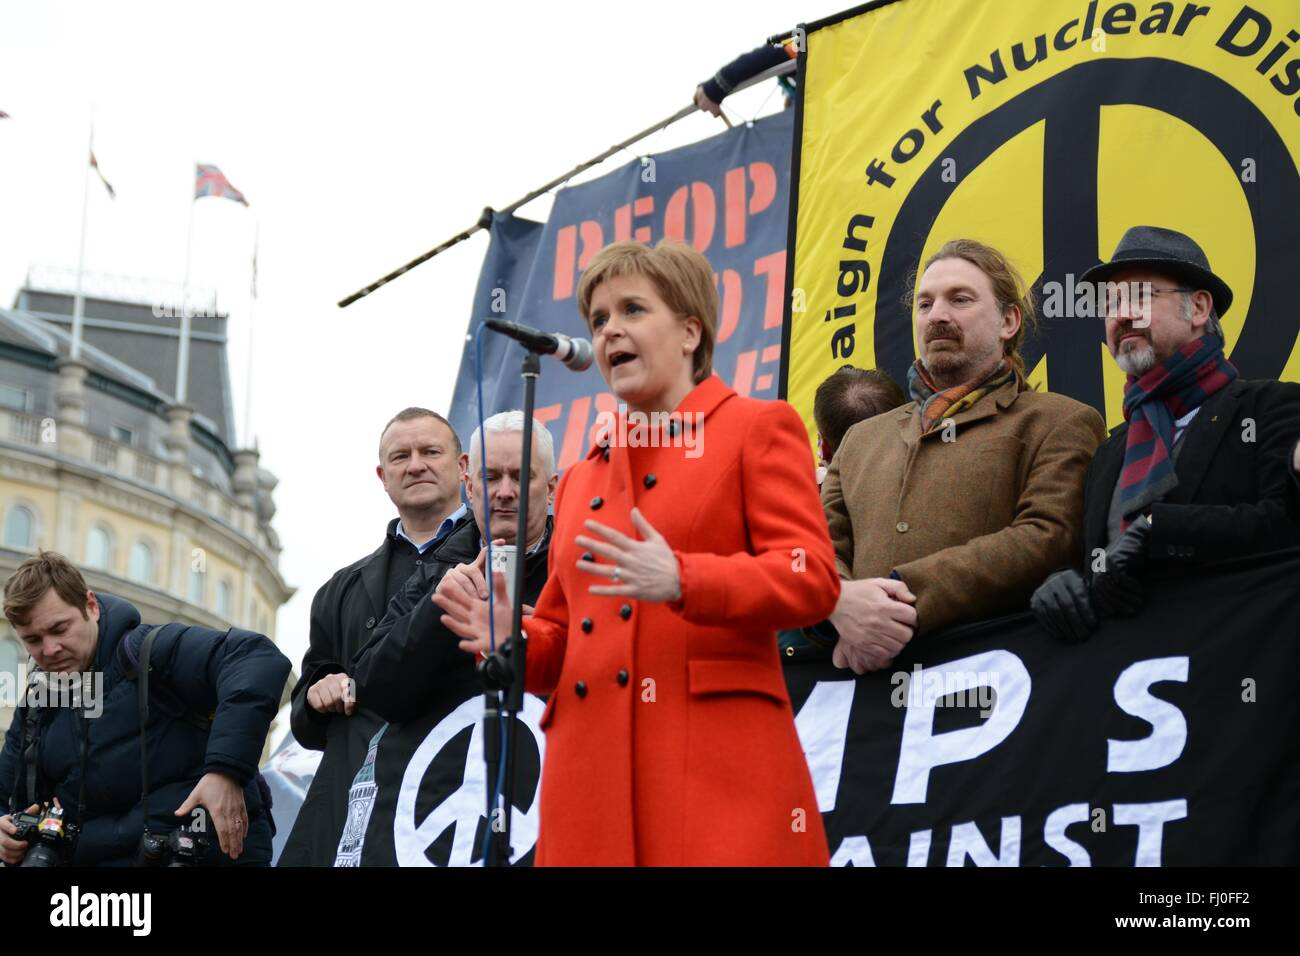 London, UK. 27th February 2016. Nicola Sturgeon addresses crowds who rallied against Trident nuclear missiles in - Stock Image